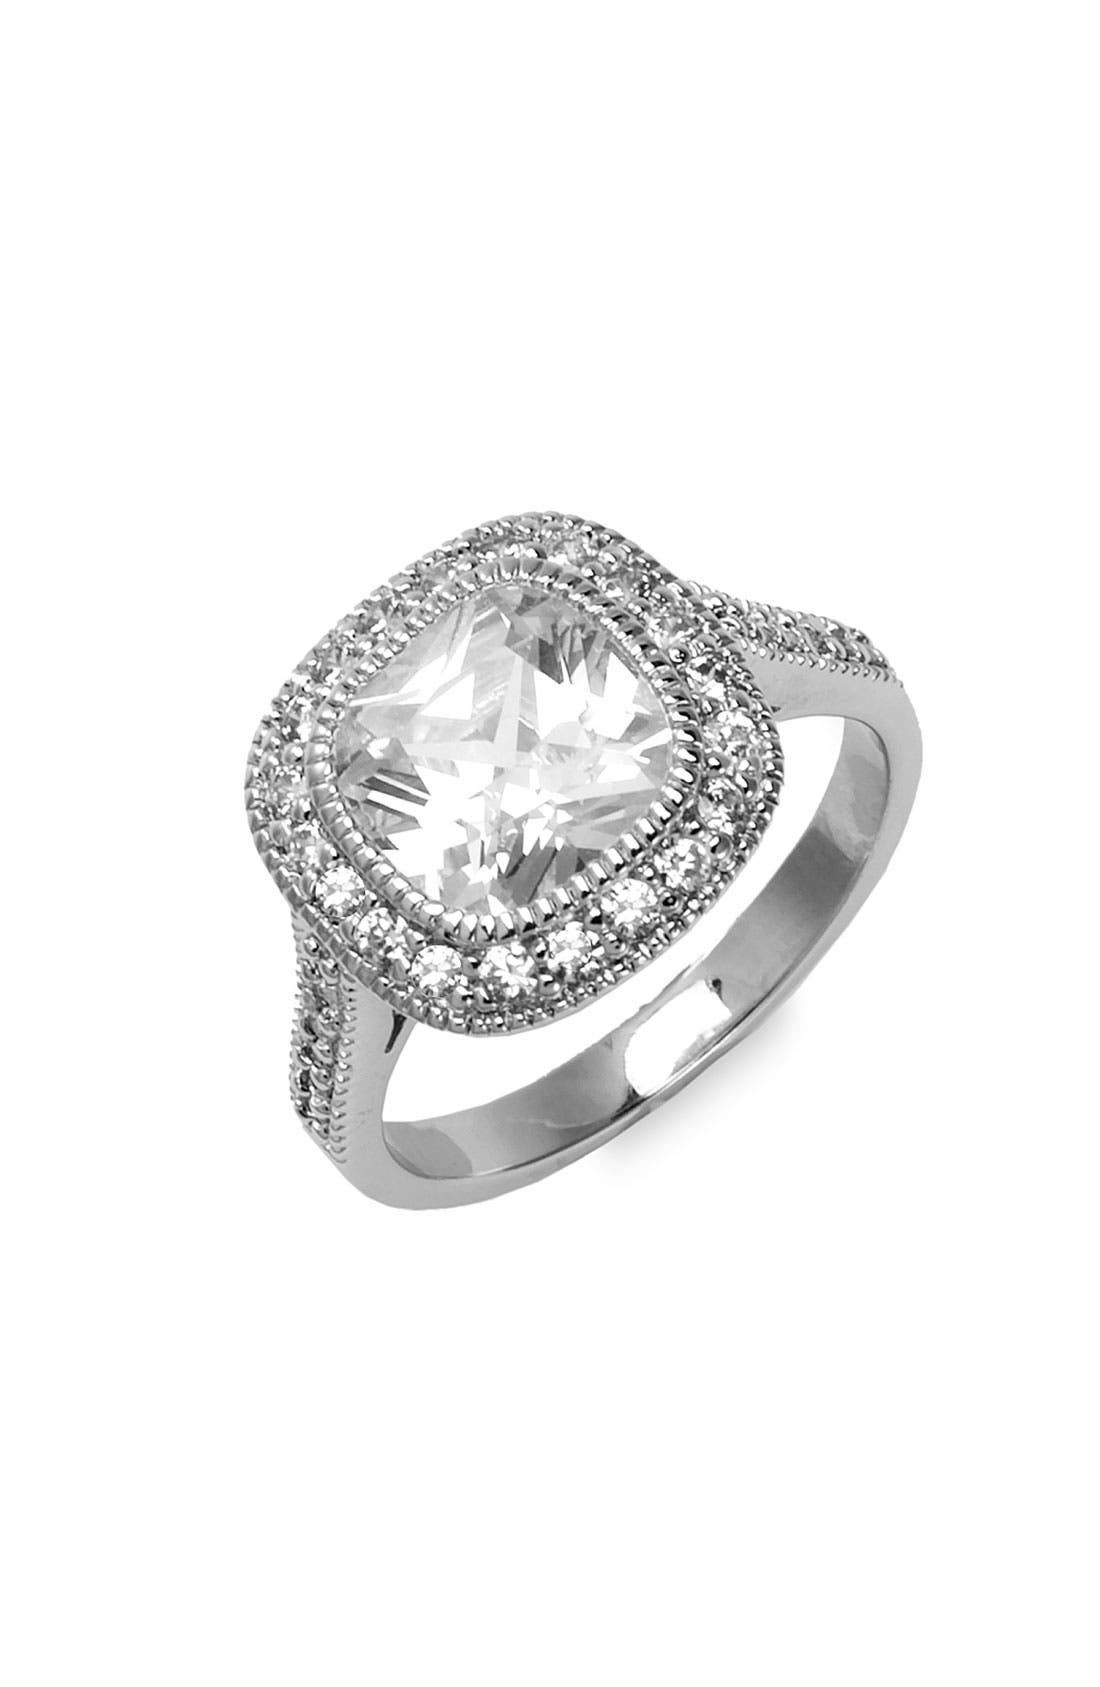 Main Image - Ariella Collection Cushion Cut Ring